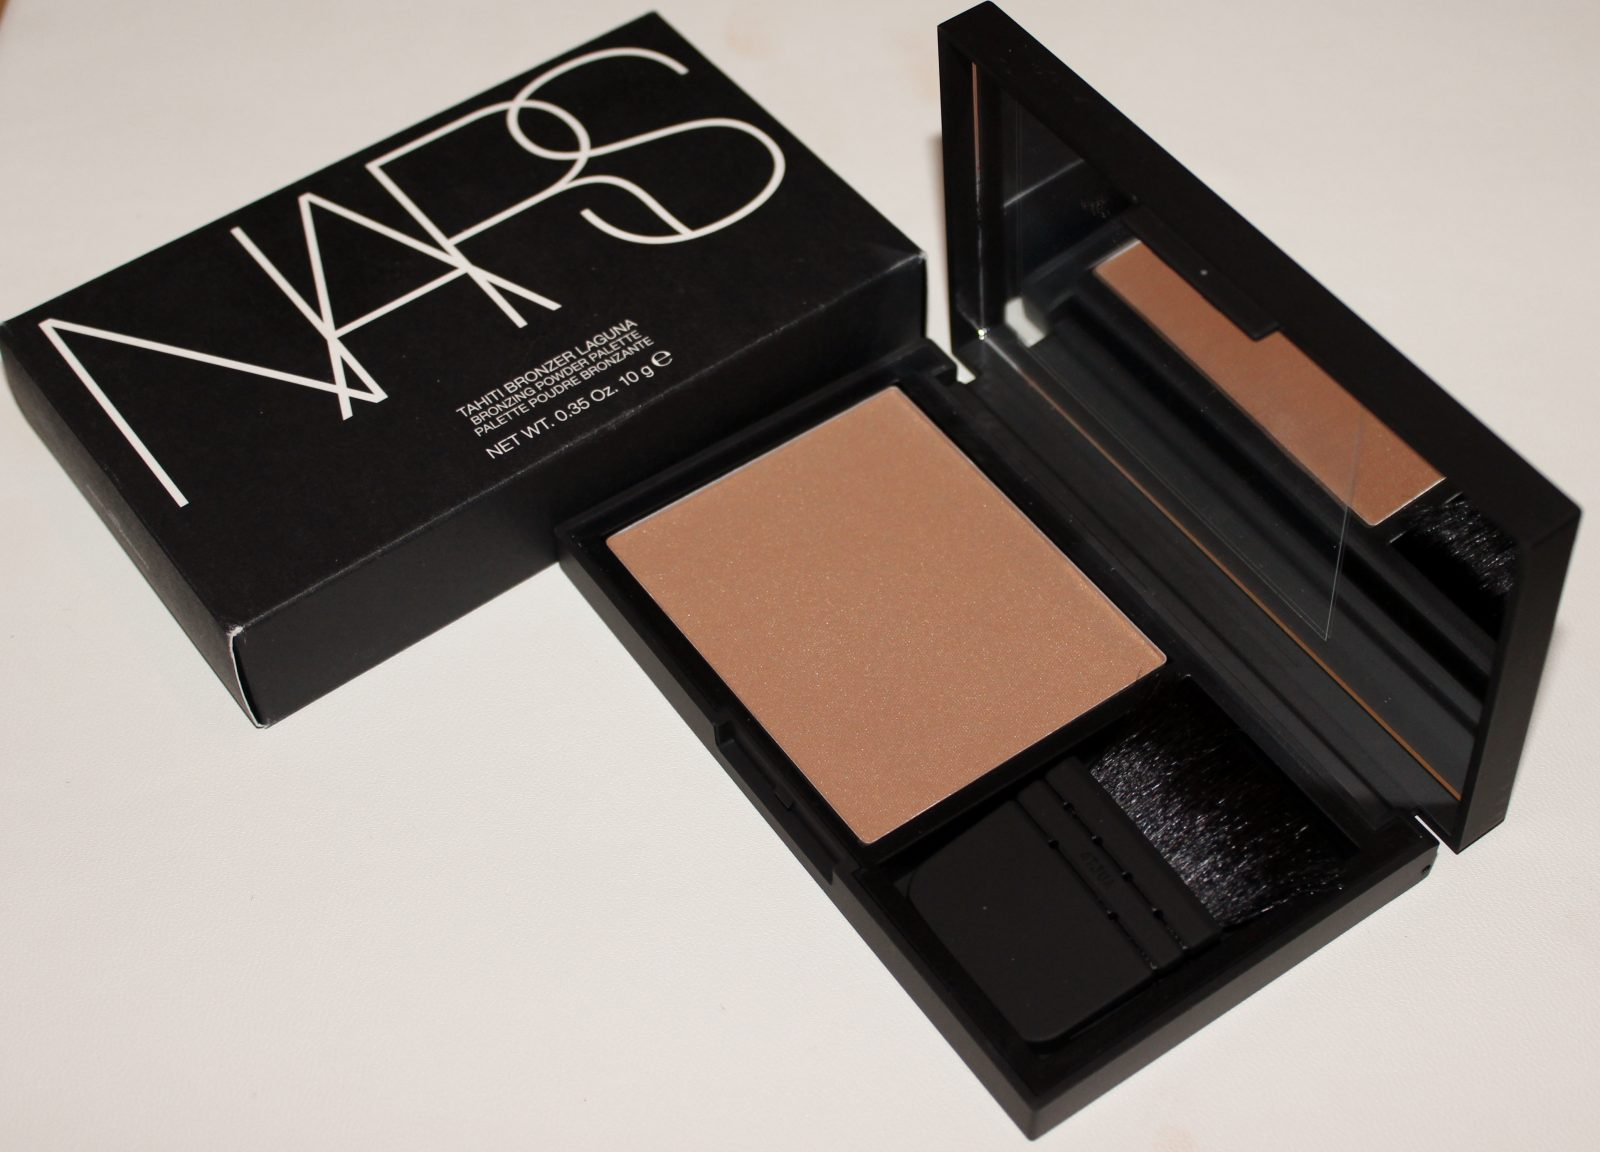 Nars Tahiti Bronzer Laguna Bronzing Powder Palette - The Beautiful Truth